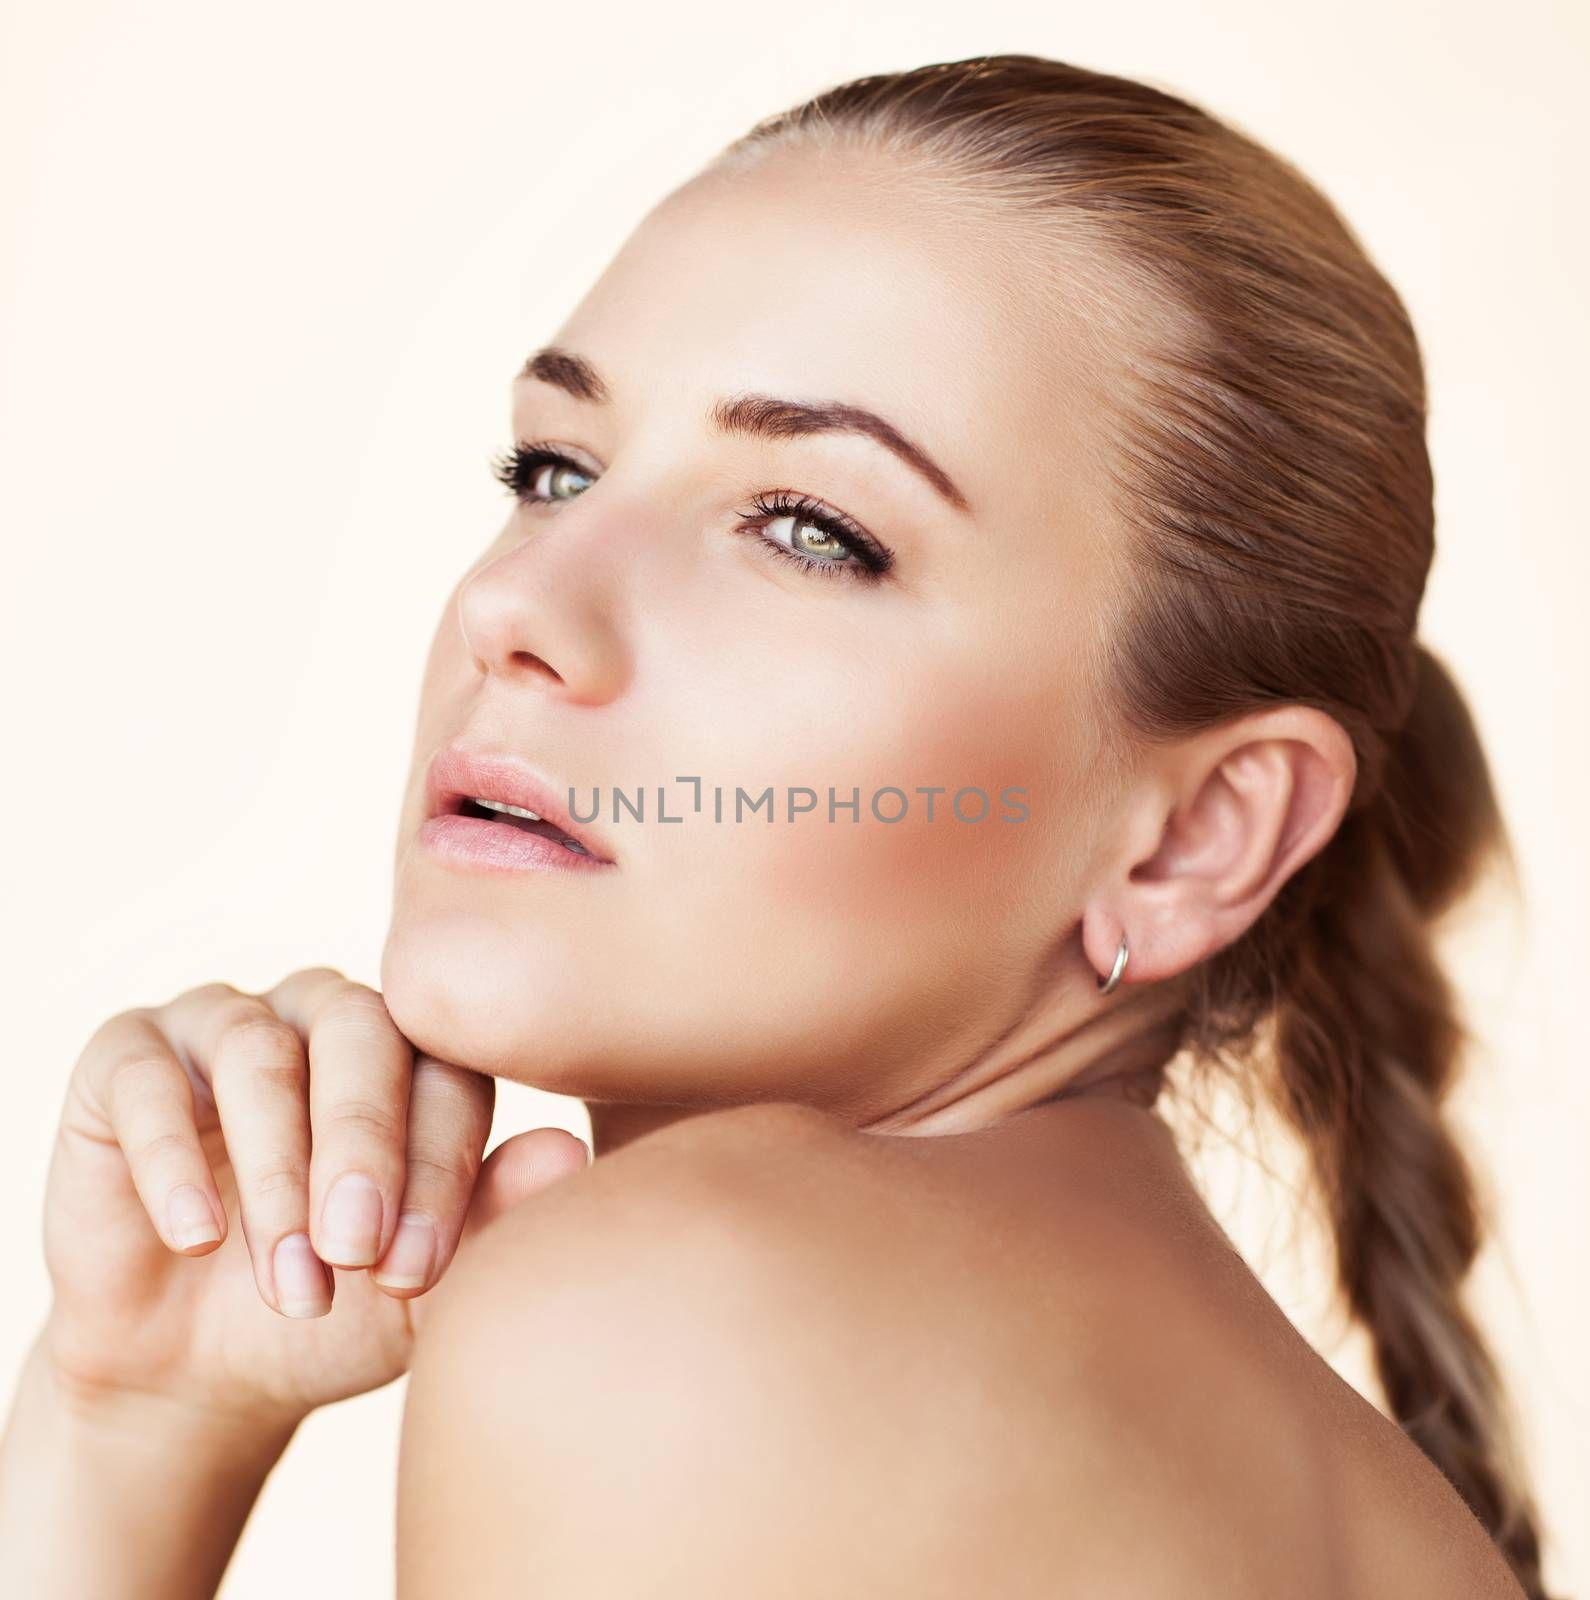 Closeup portrait of a gorgeous seductive female with natural makeup and scythe hairstyle isolated on a beige background, authentic beauty